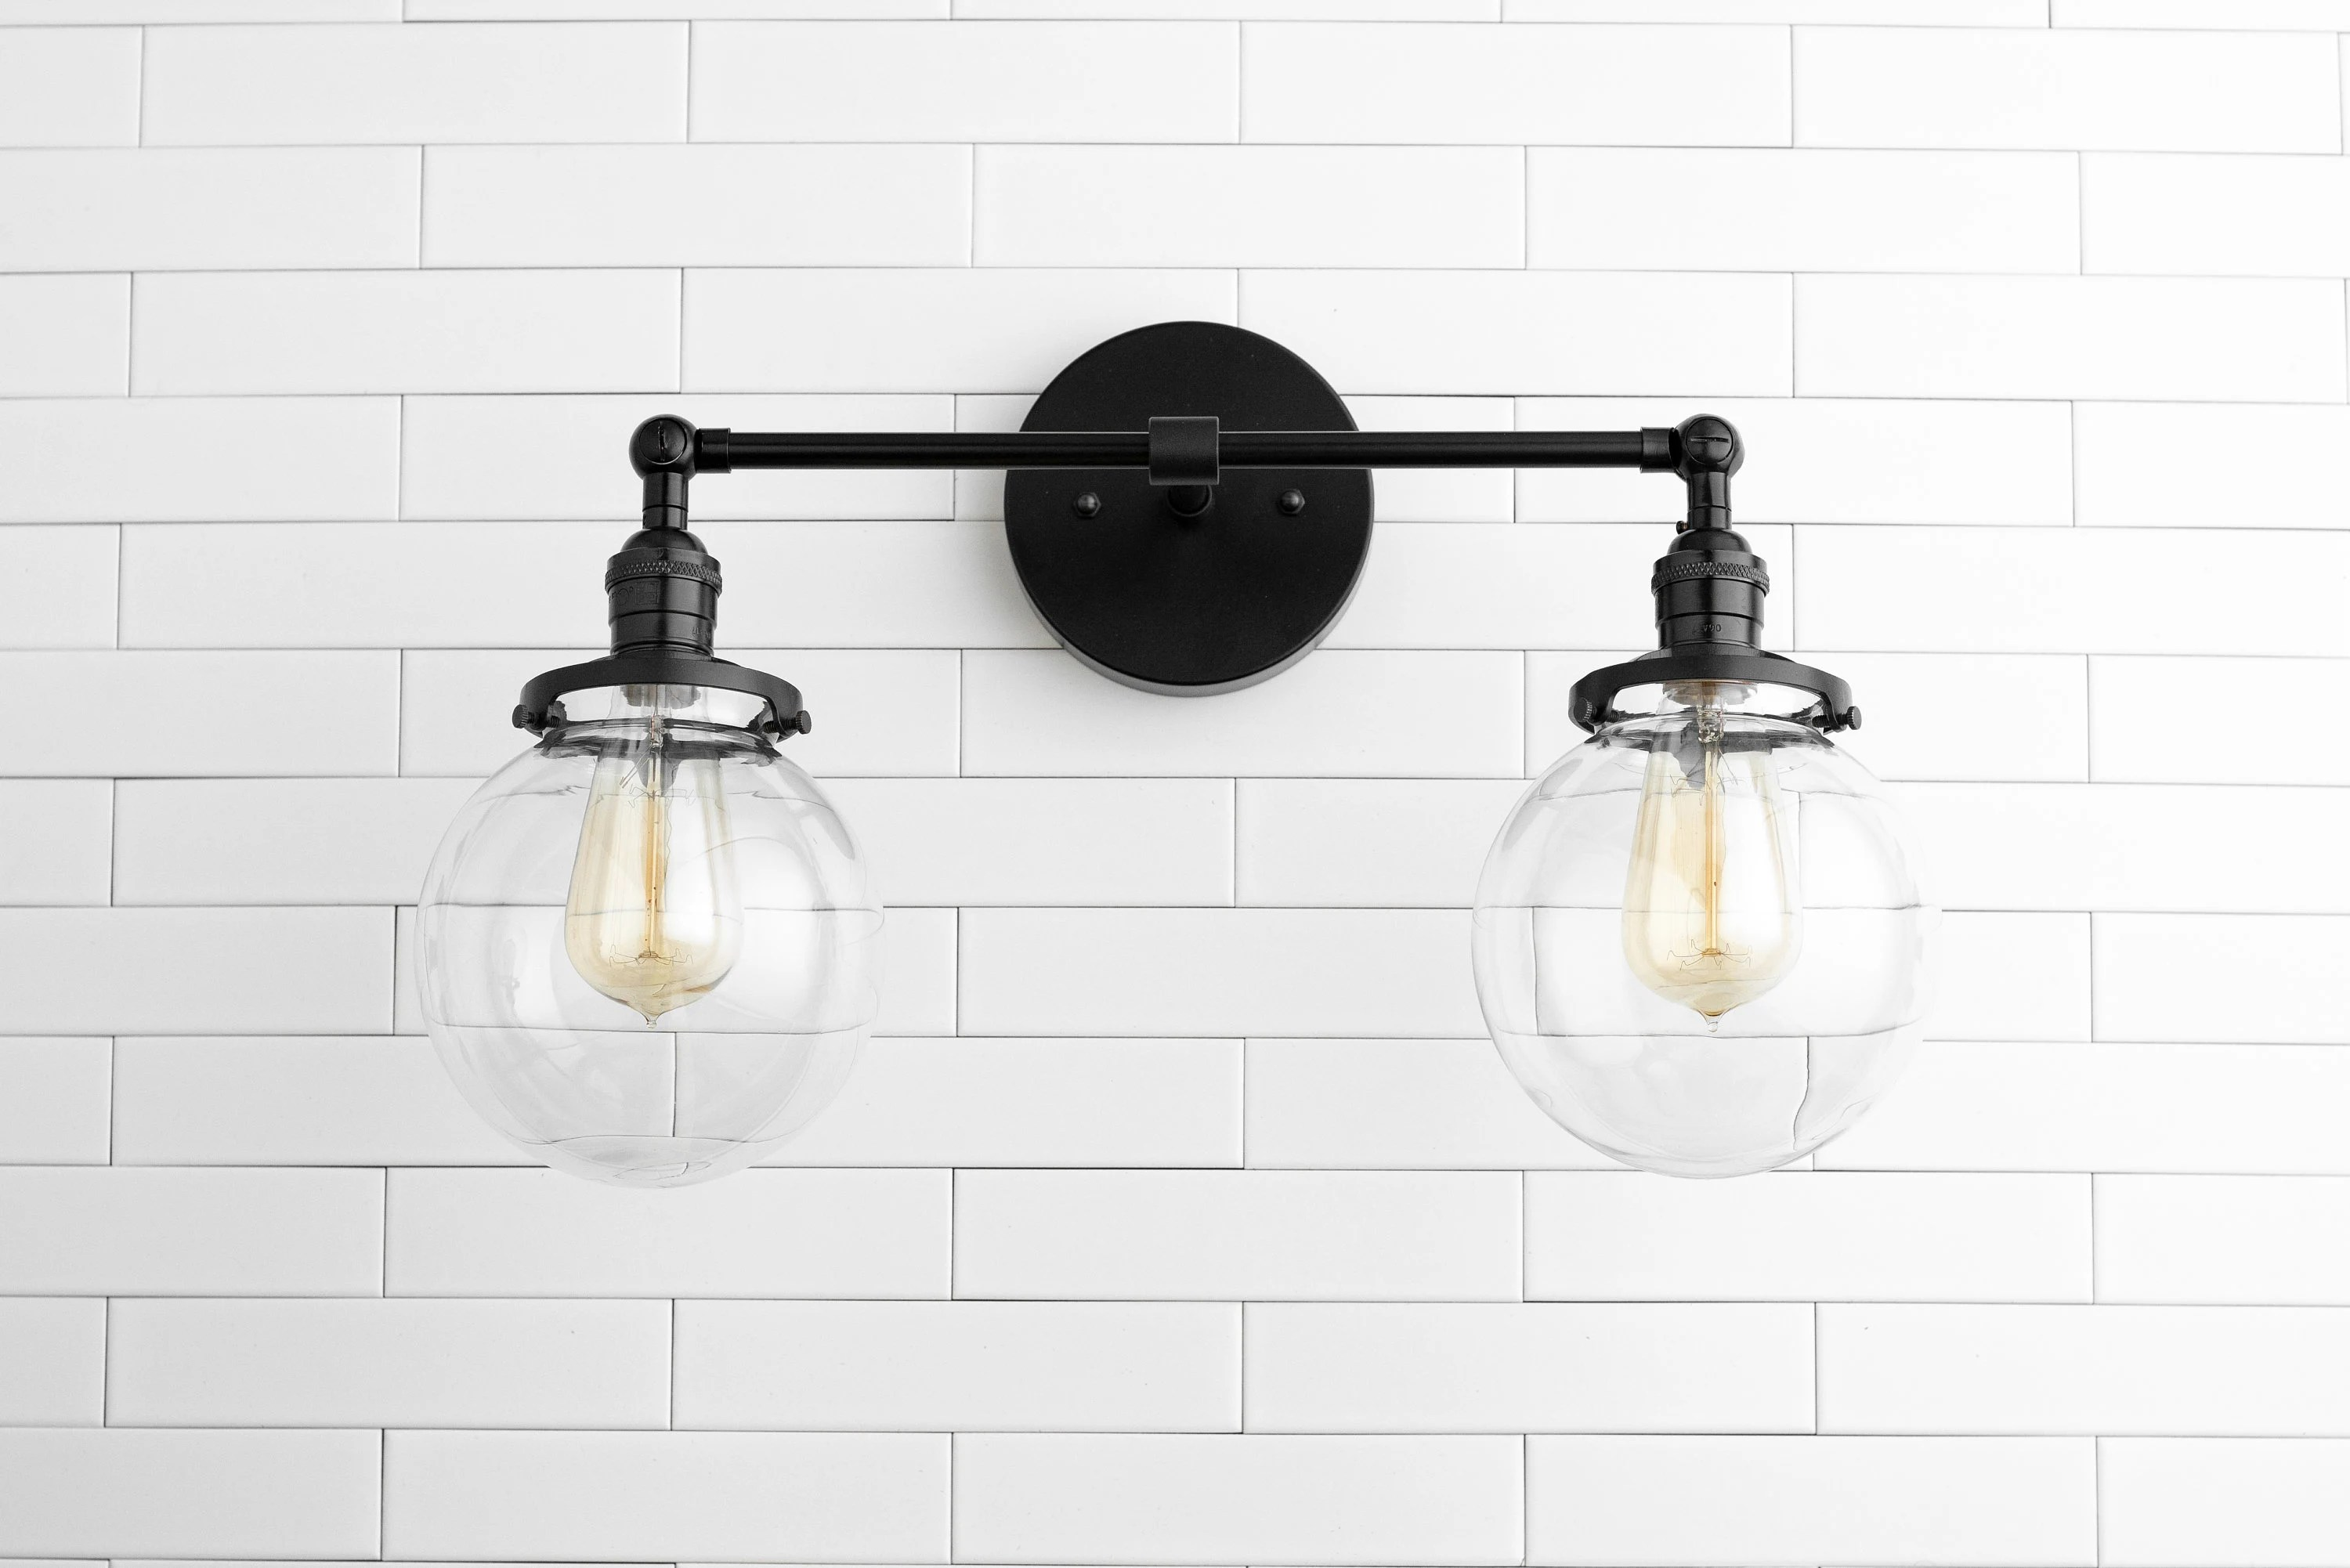 Bathroom Light Fixtures Clear Globe Light Globe Vanity Light Black Light Fixture Bathroom Lighting Farmhouse Light Industrial Light Vanity Lighting